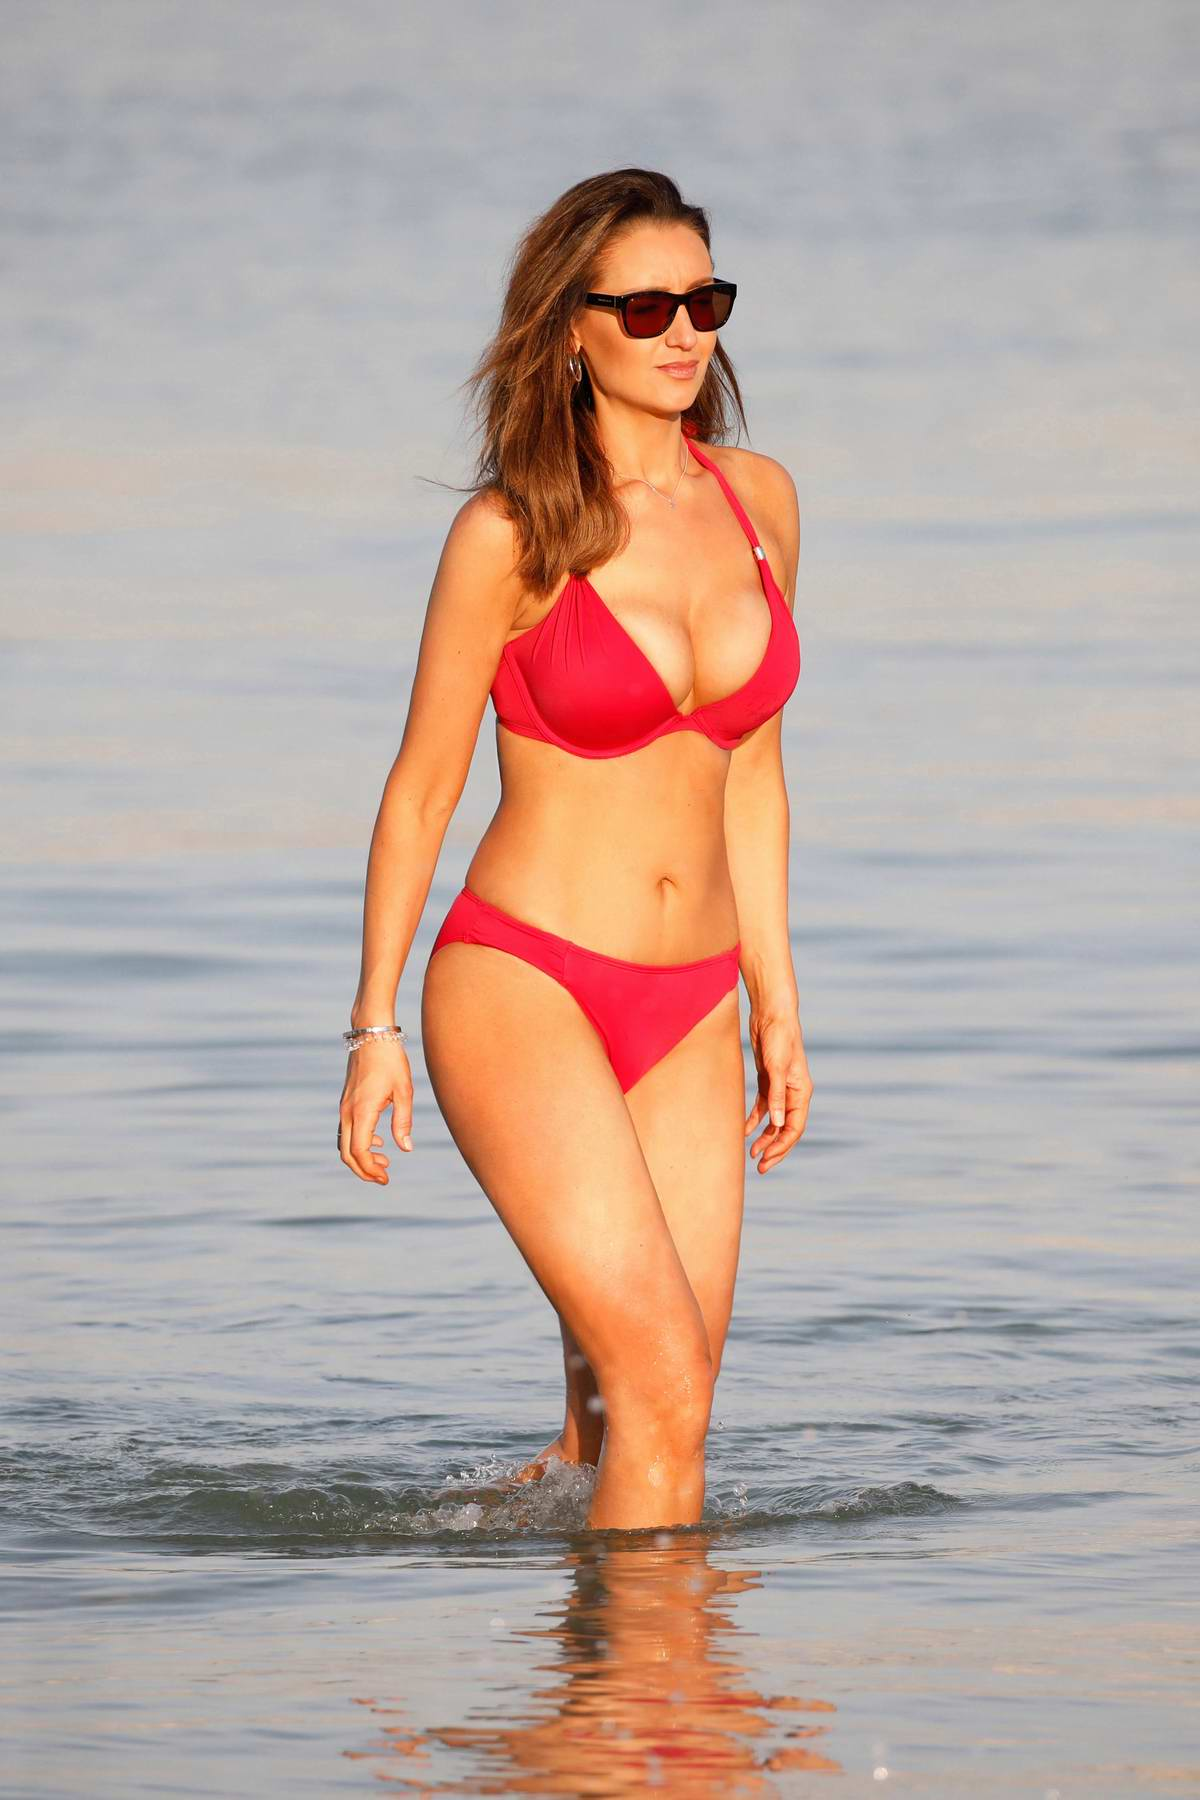 Catherine Tyldesley stuns in a red bikini while on the beach at Le Royal Meridien Hotel in Dubai, UAE